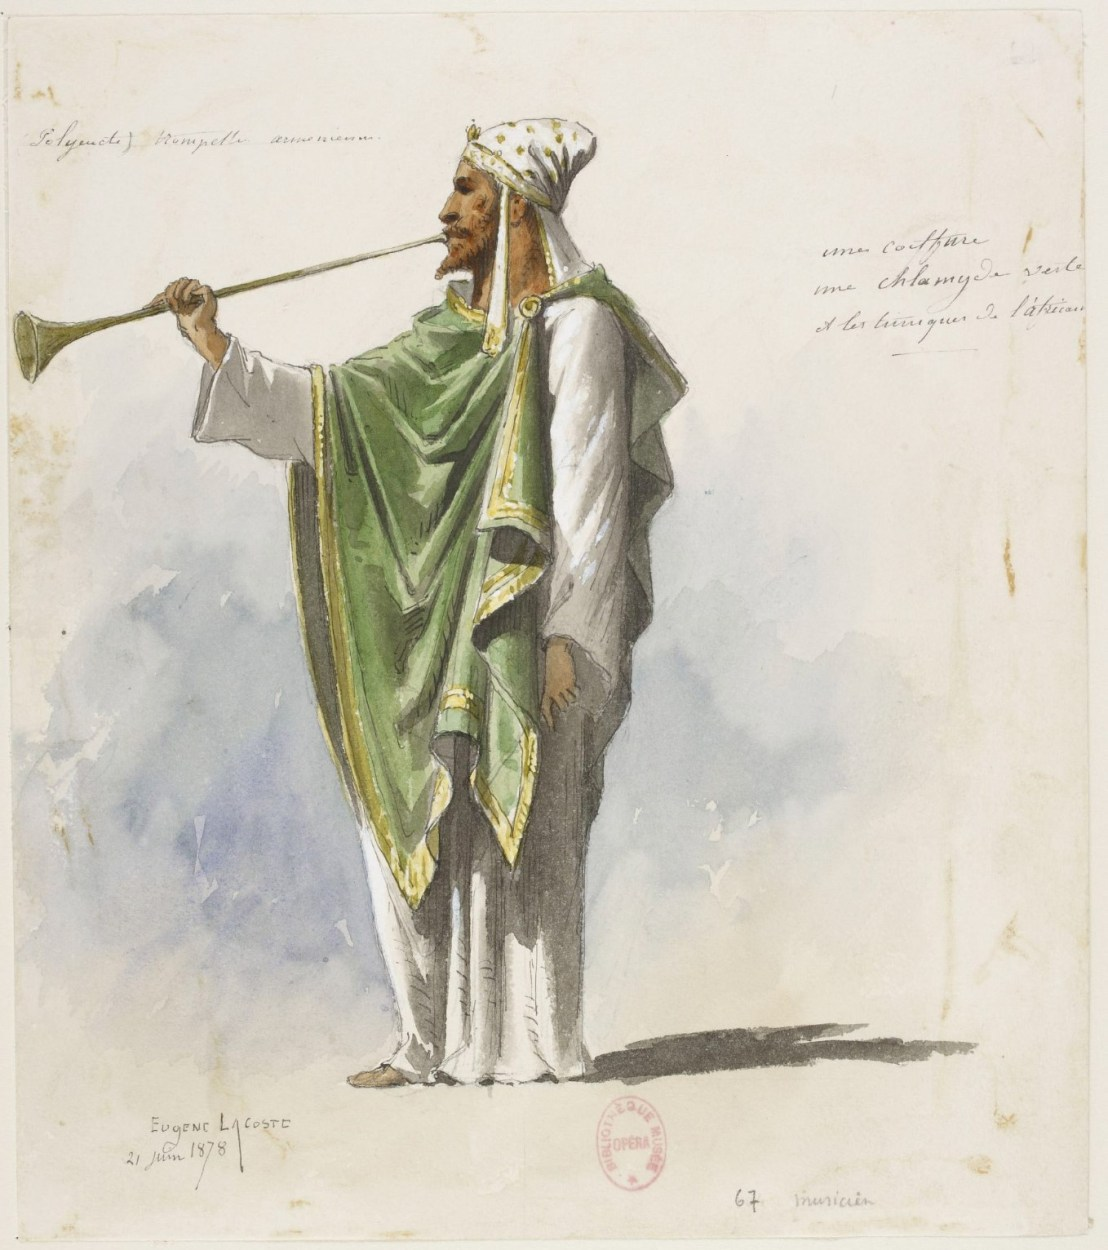 Armenian trumpet player by Eugene Lacoste